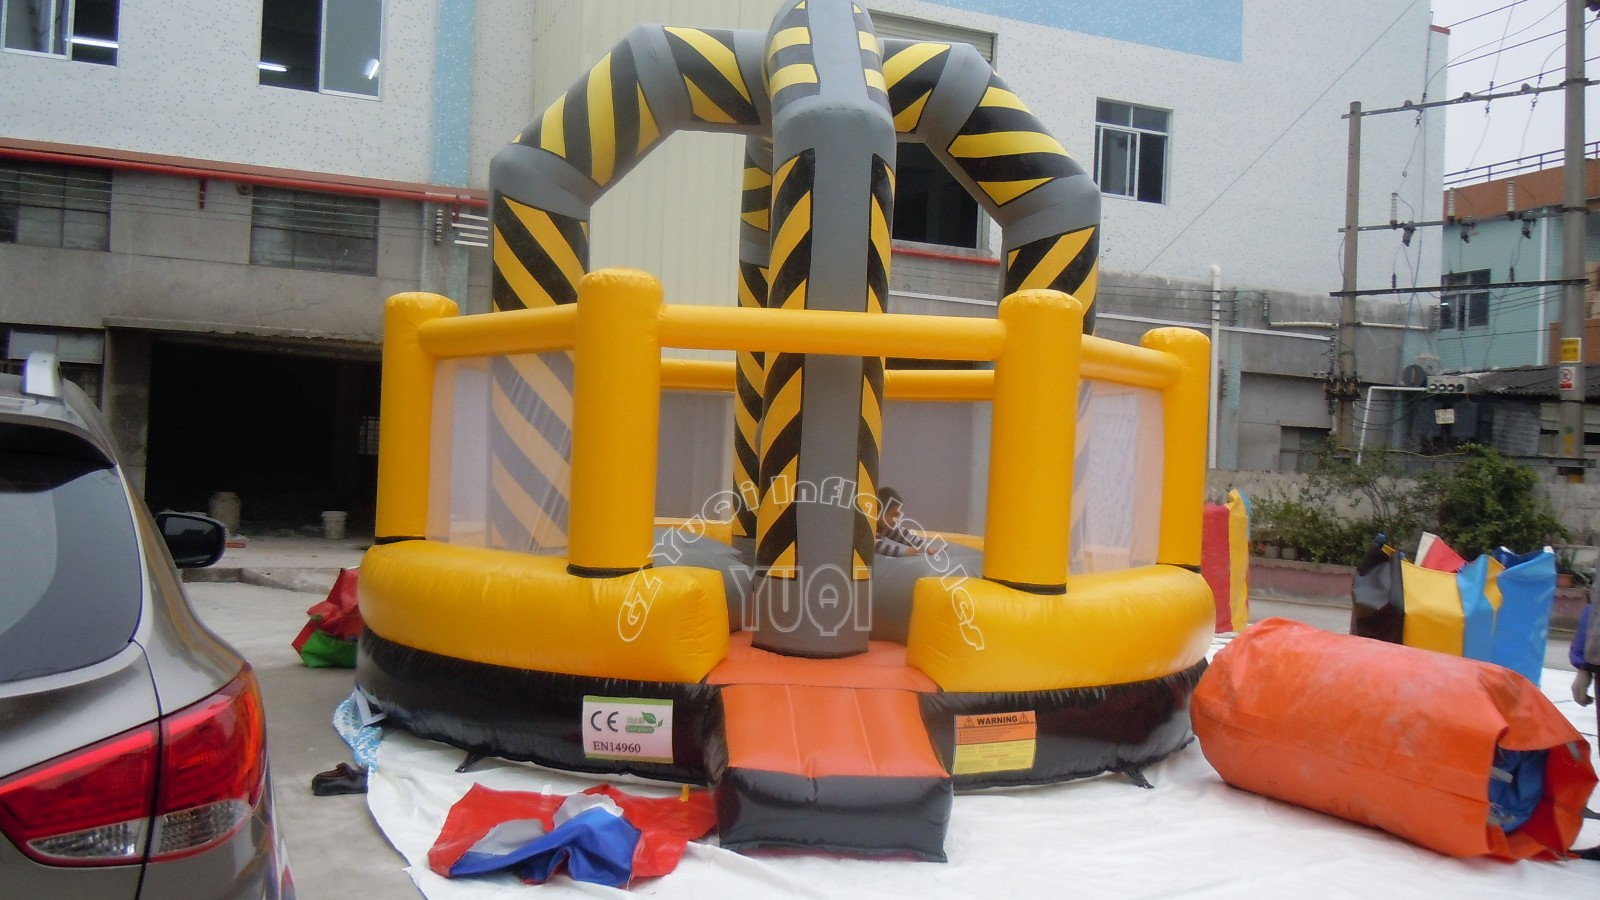 YUQI-Professional Inflatable Sport Inflatable Games For Sale Manufacture